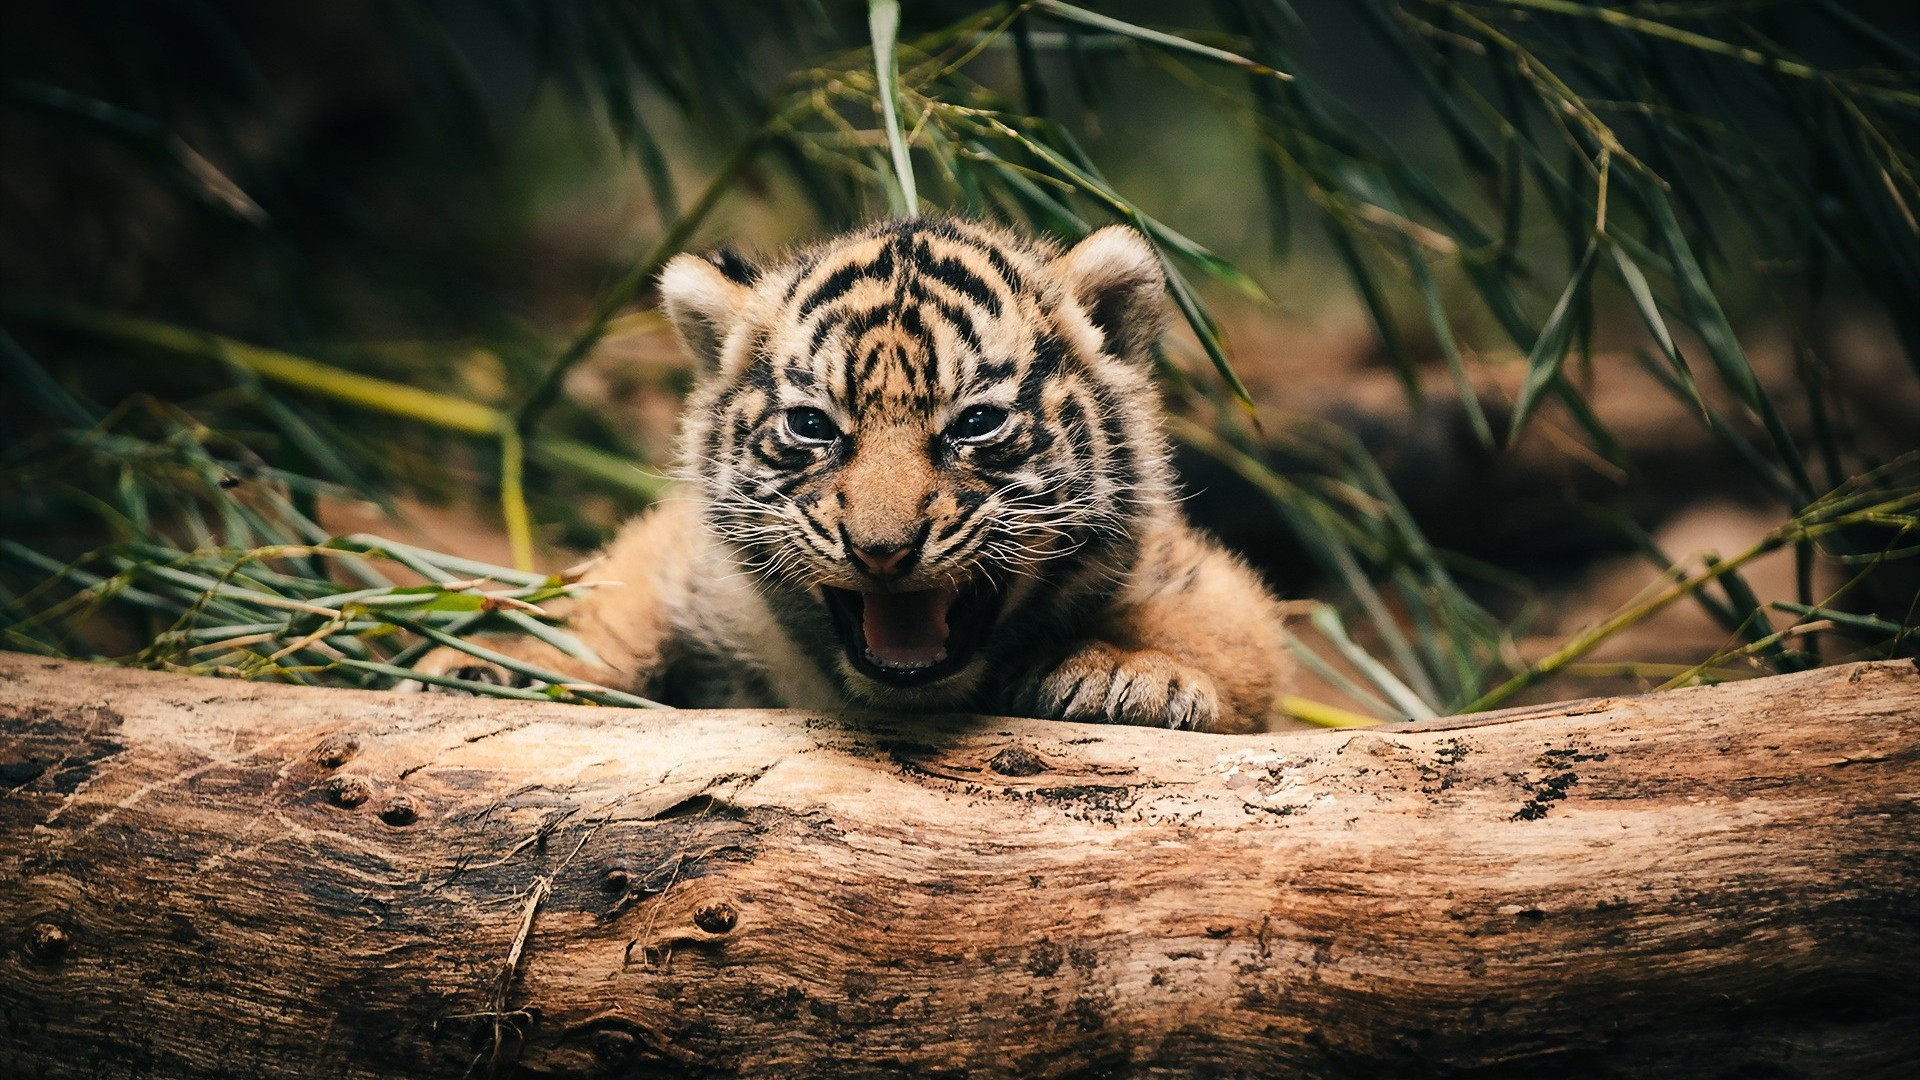 Collection of Baby Tiger Backgrounds on HDWallpapers